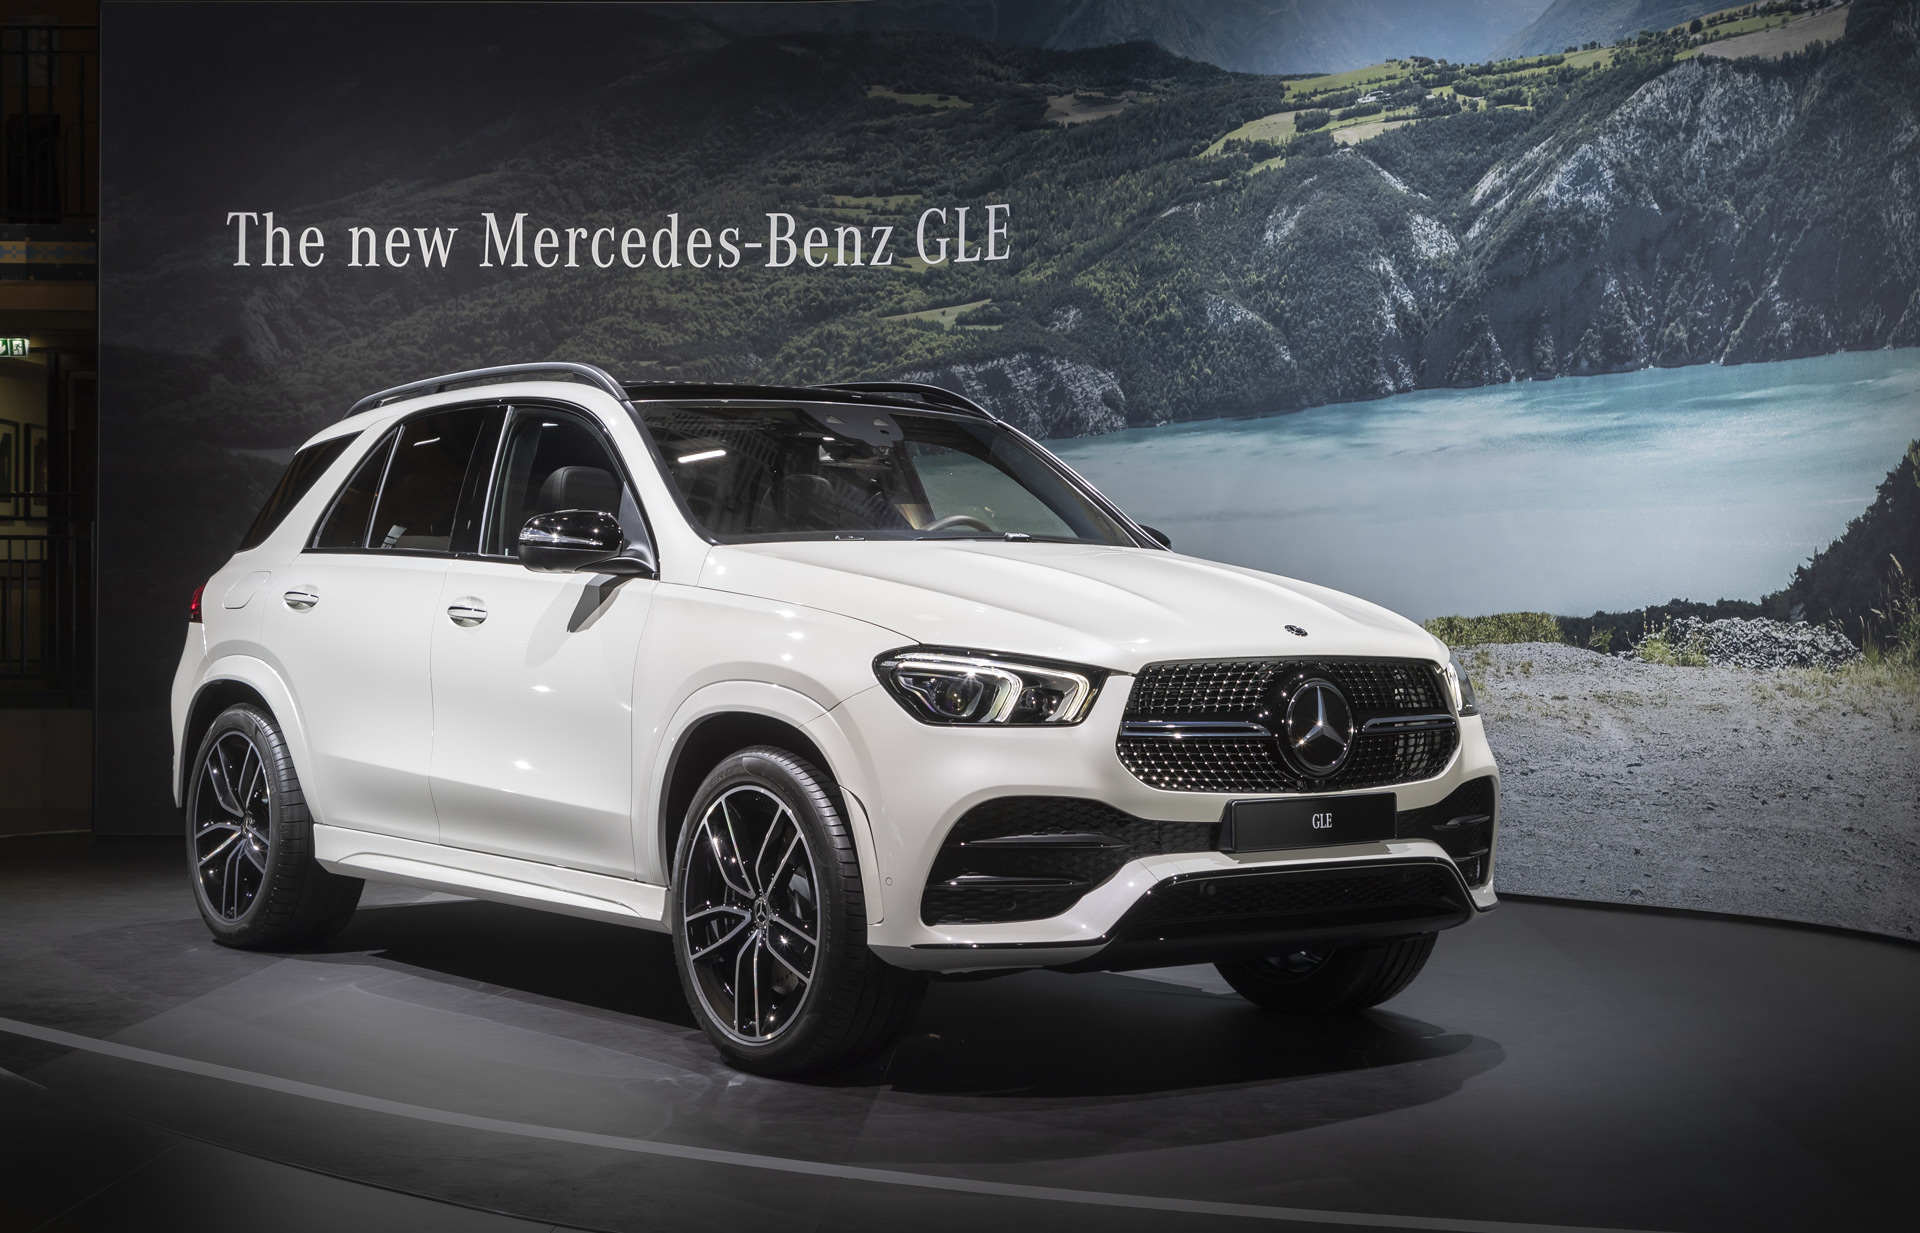 2020 Mercedes Benz Gle Plug In Hybrid To Have 60 Miles Of Electric Range